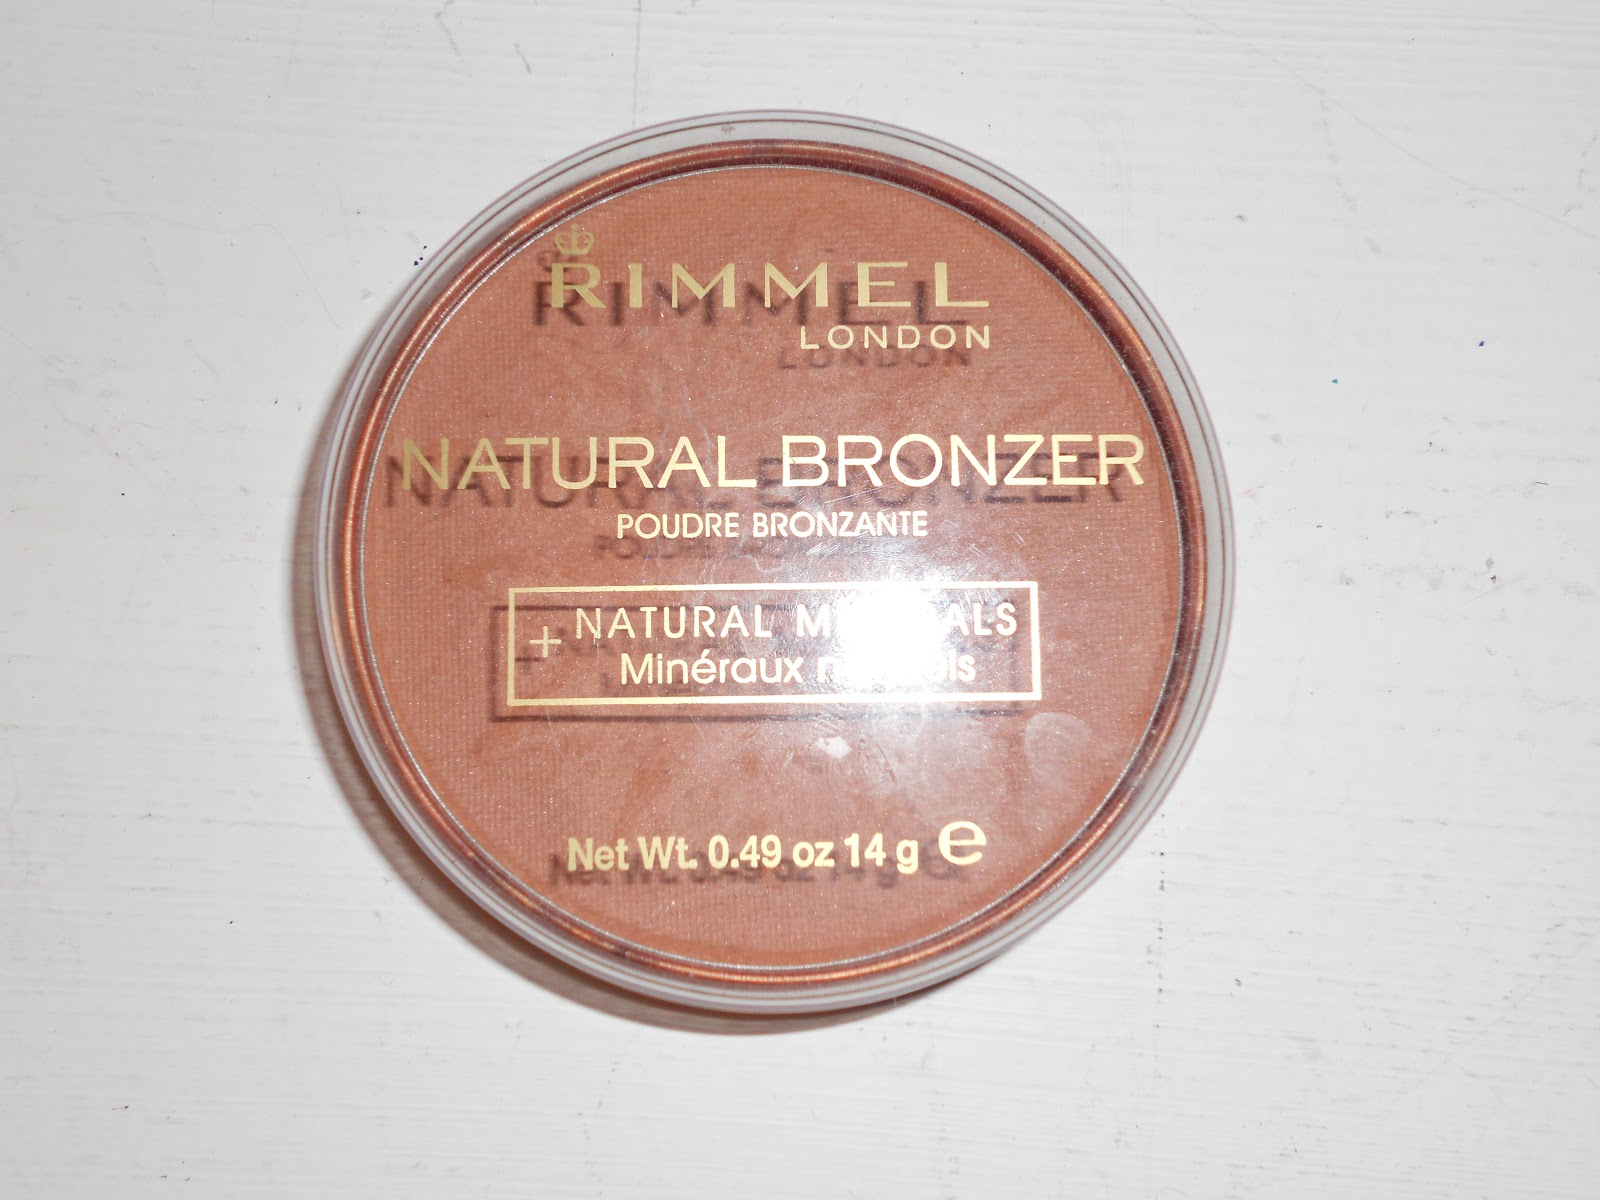 rimmel london natural bronzer in shade 021 sun light review. Black Bedroom Furniture Sets. Home Design Ideas